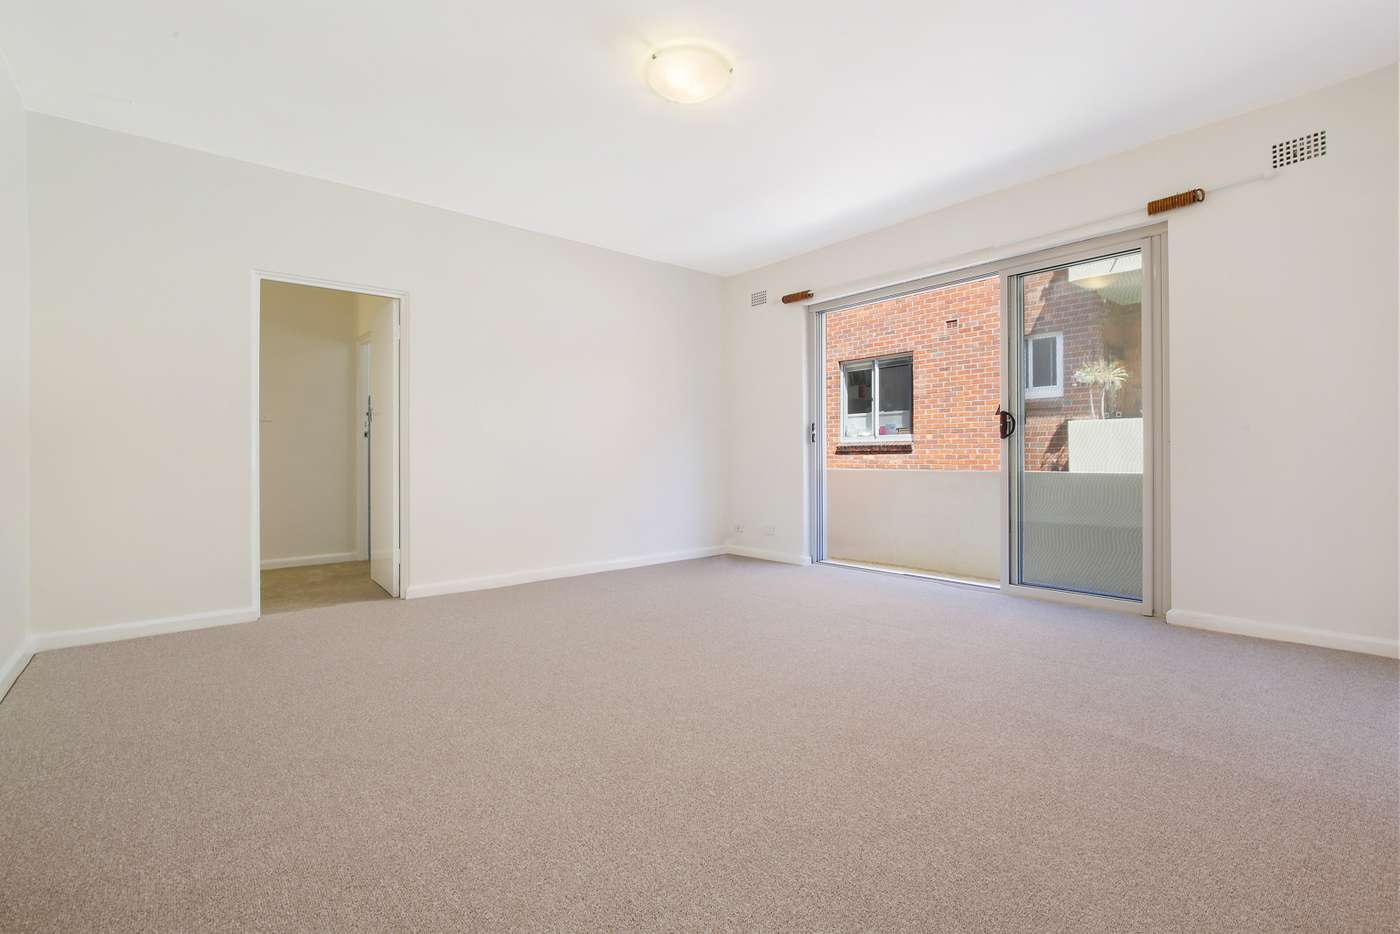 Main view of Homely apartment listing, 7/5 Isabel Avenue, Vaucluse NSW 2030